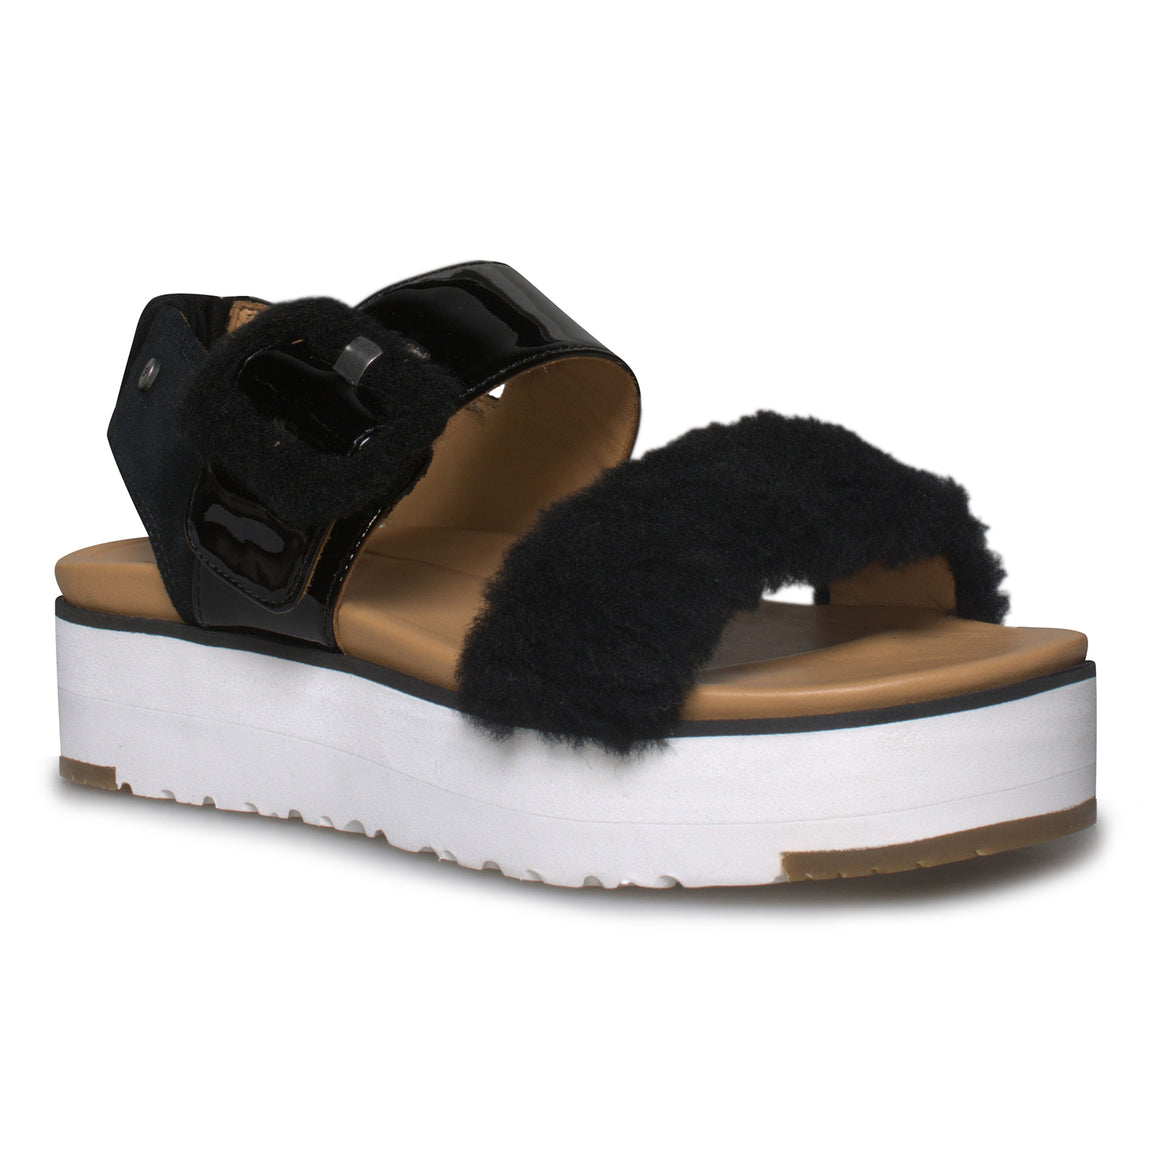 UGG Fluff Chella Black Sandals - Women's